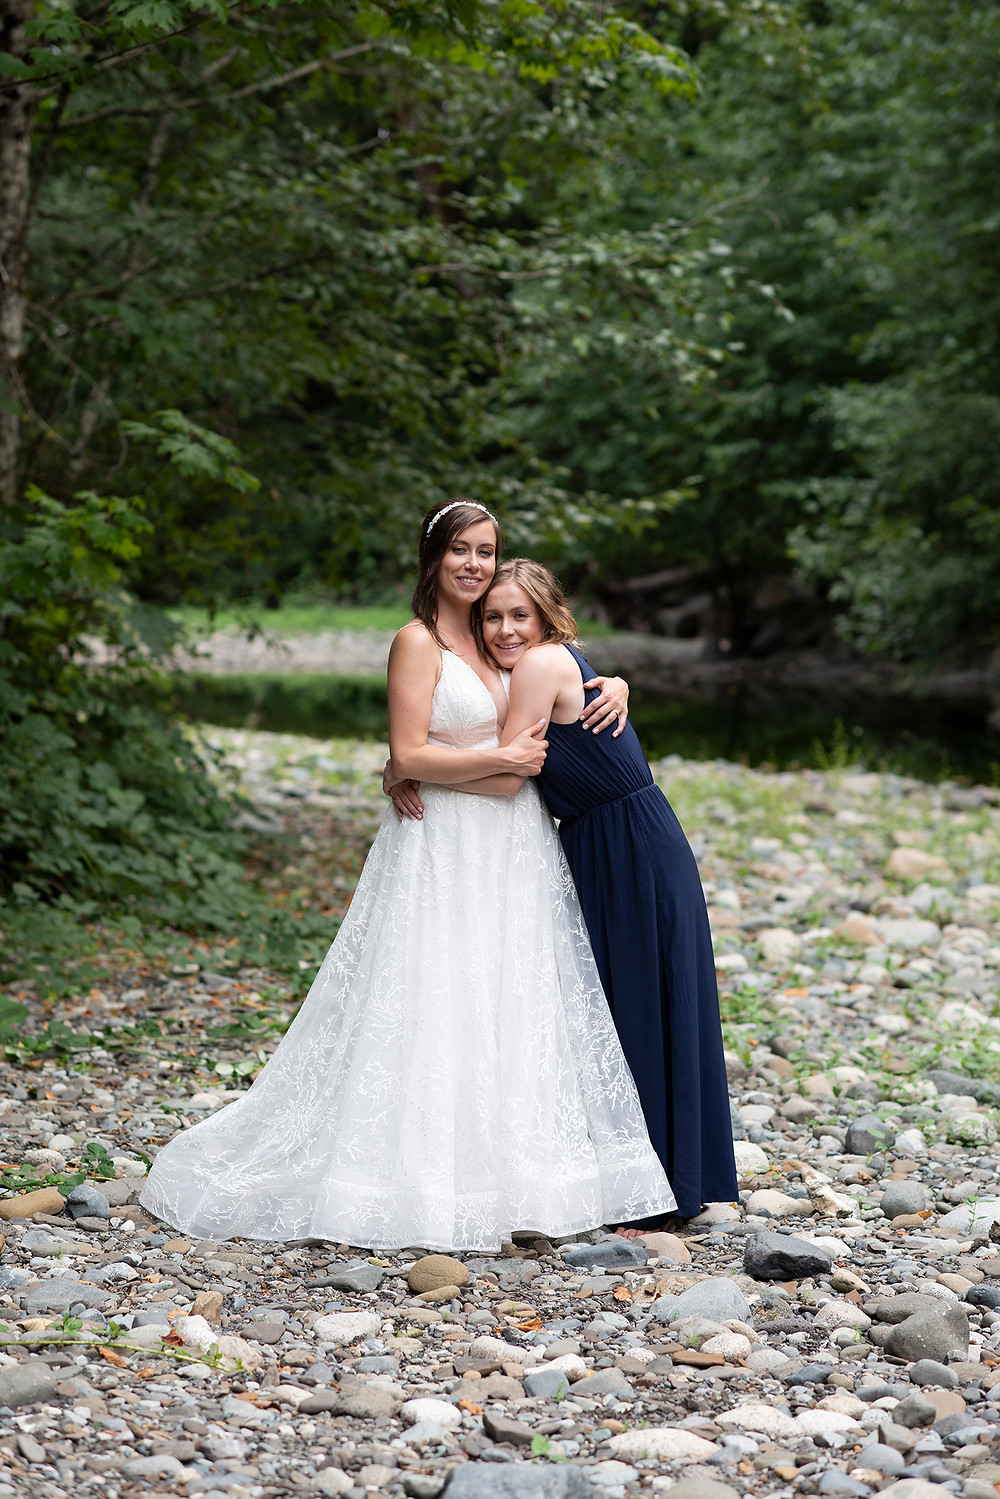 Maid of honour and bride at August wedding on Vancouver Island. photographed by Kaitlyn Shea.